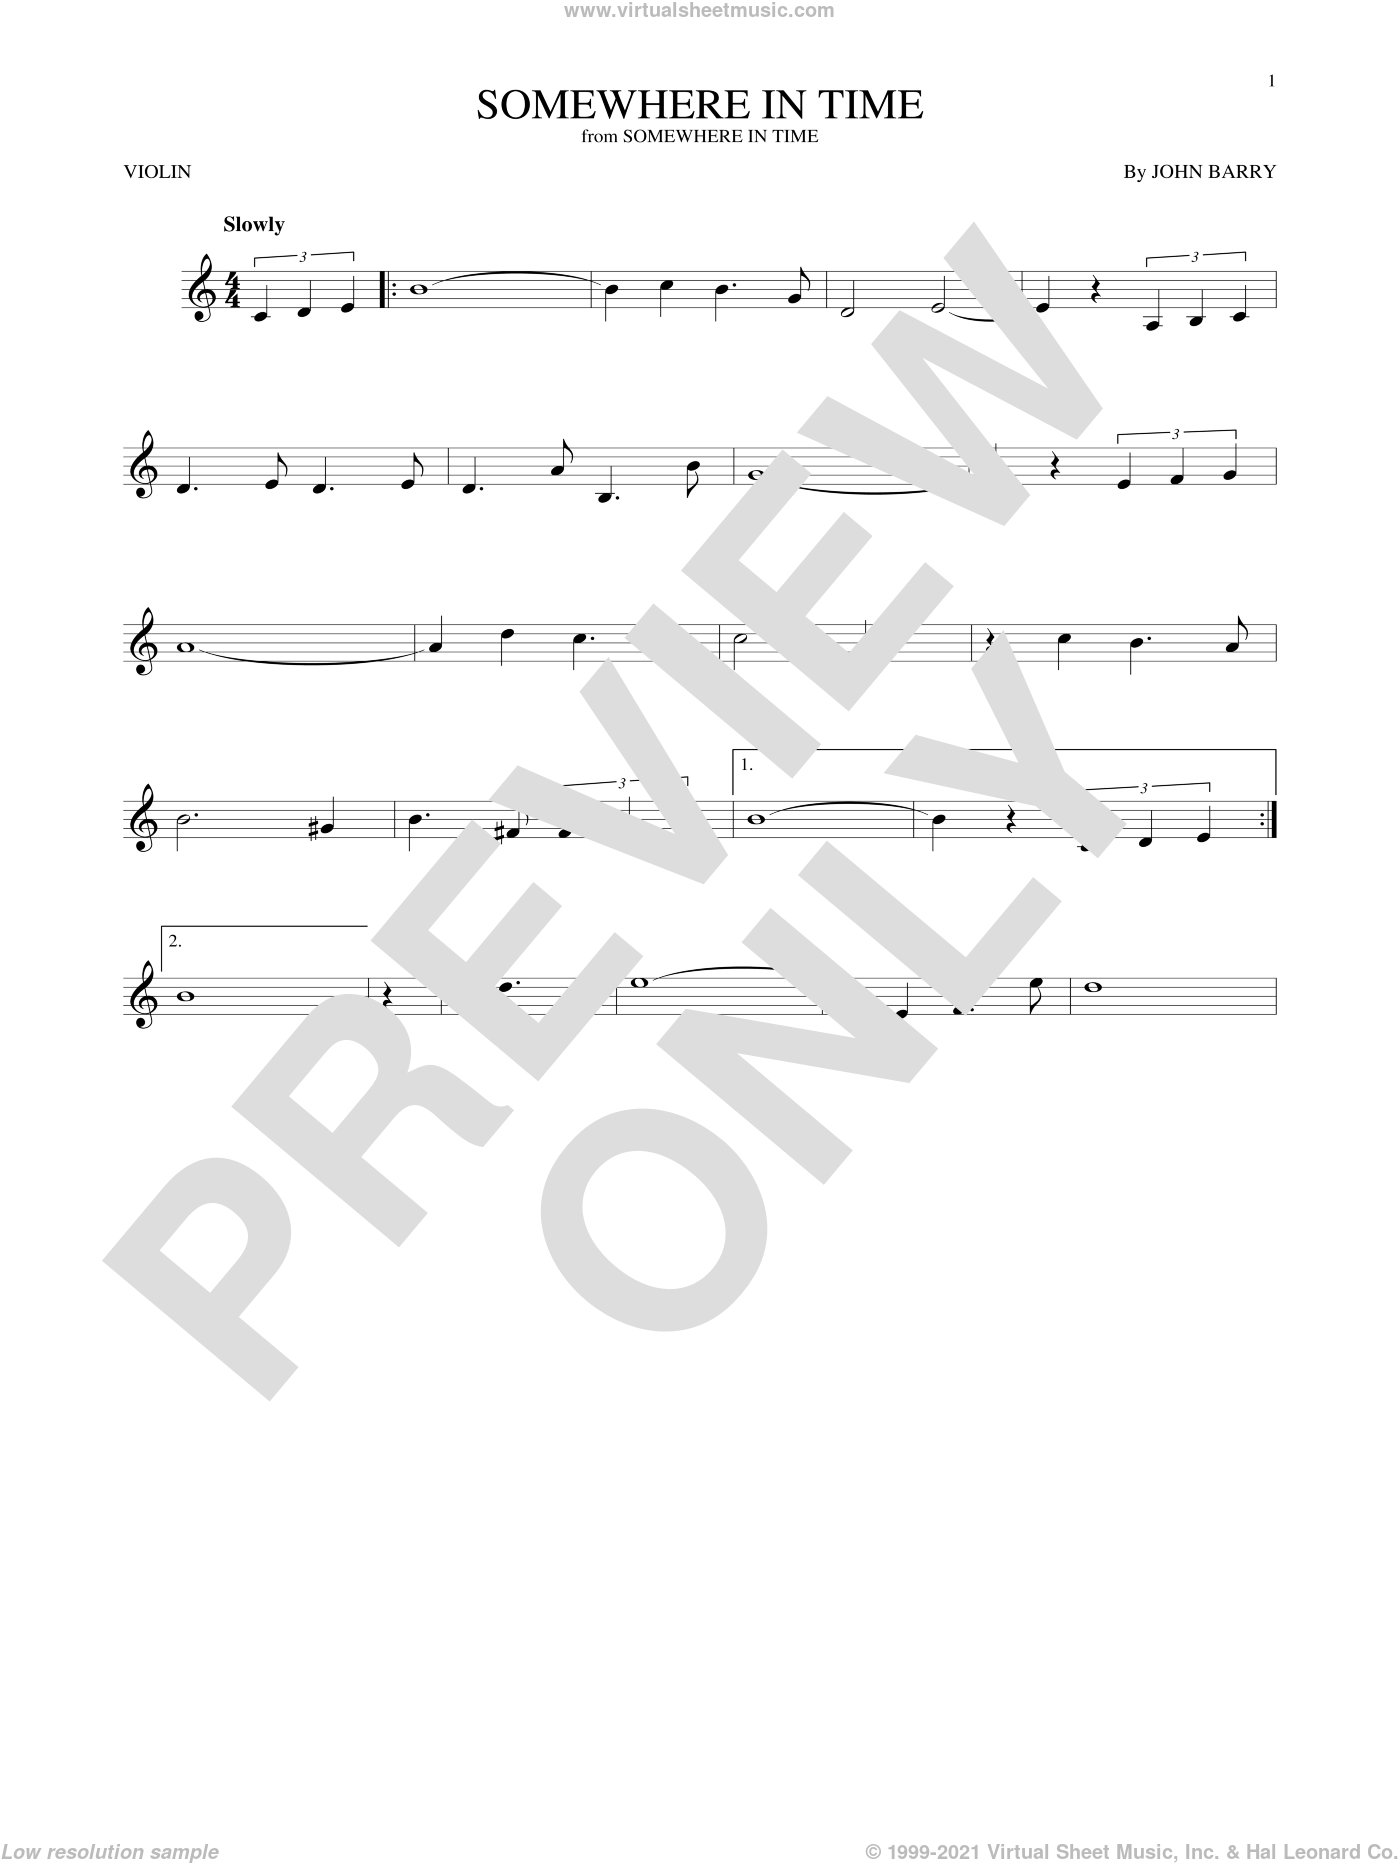 Somewhere In Time sheet music for violin solo by John Barry and B.A. Robertson, intermediate skill level